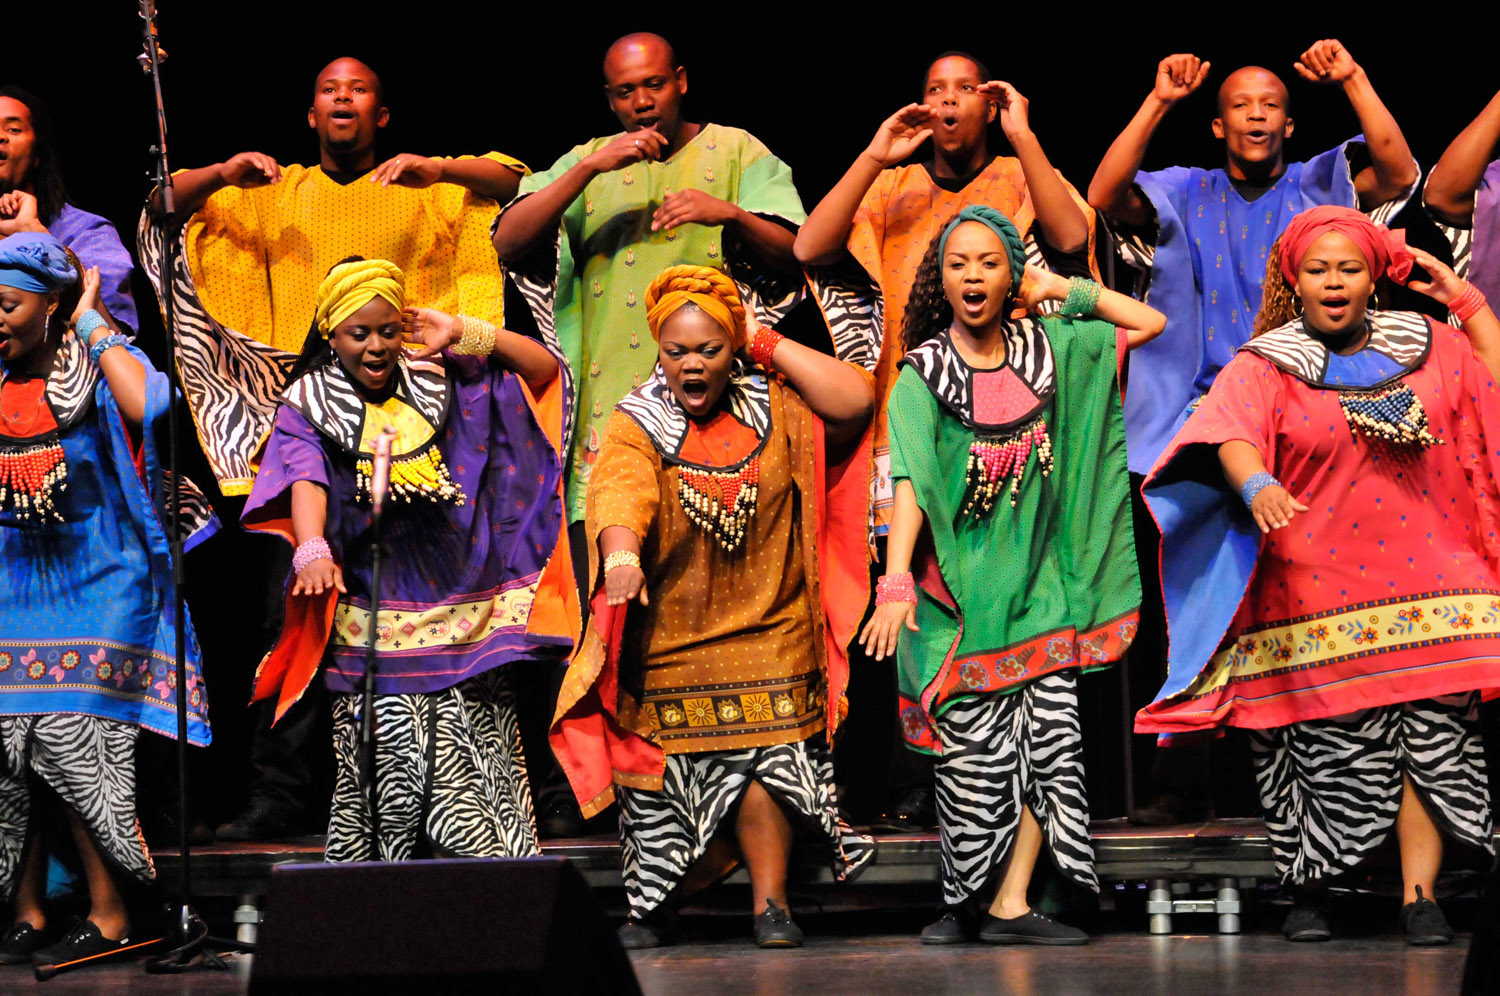 The Soweto Gospel Choir In Melbourne Photos and Images | Getty Images